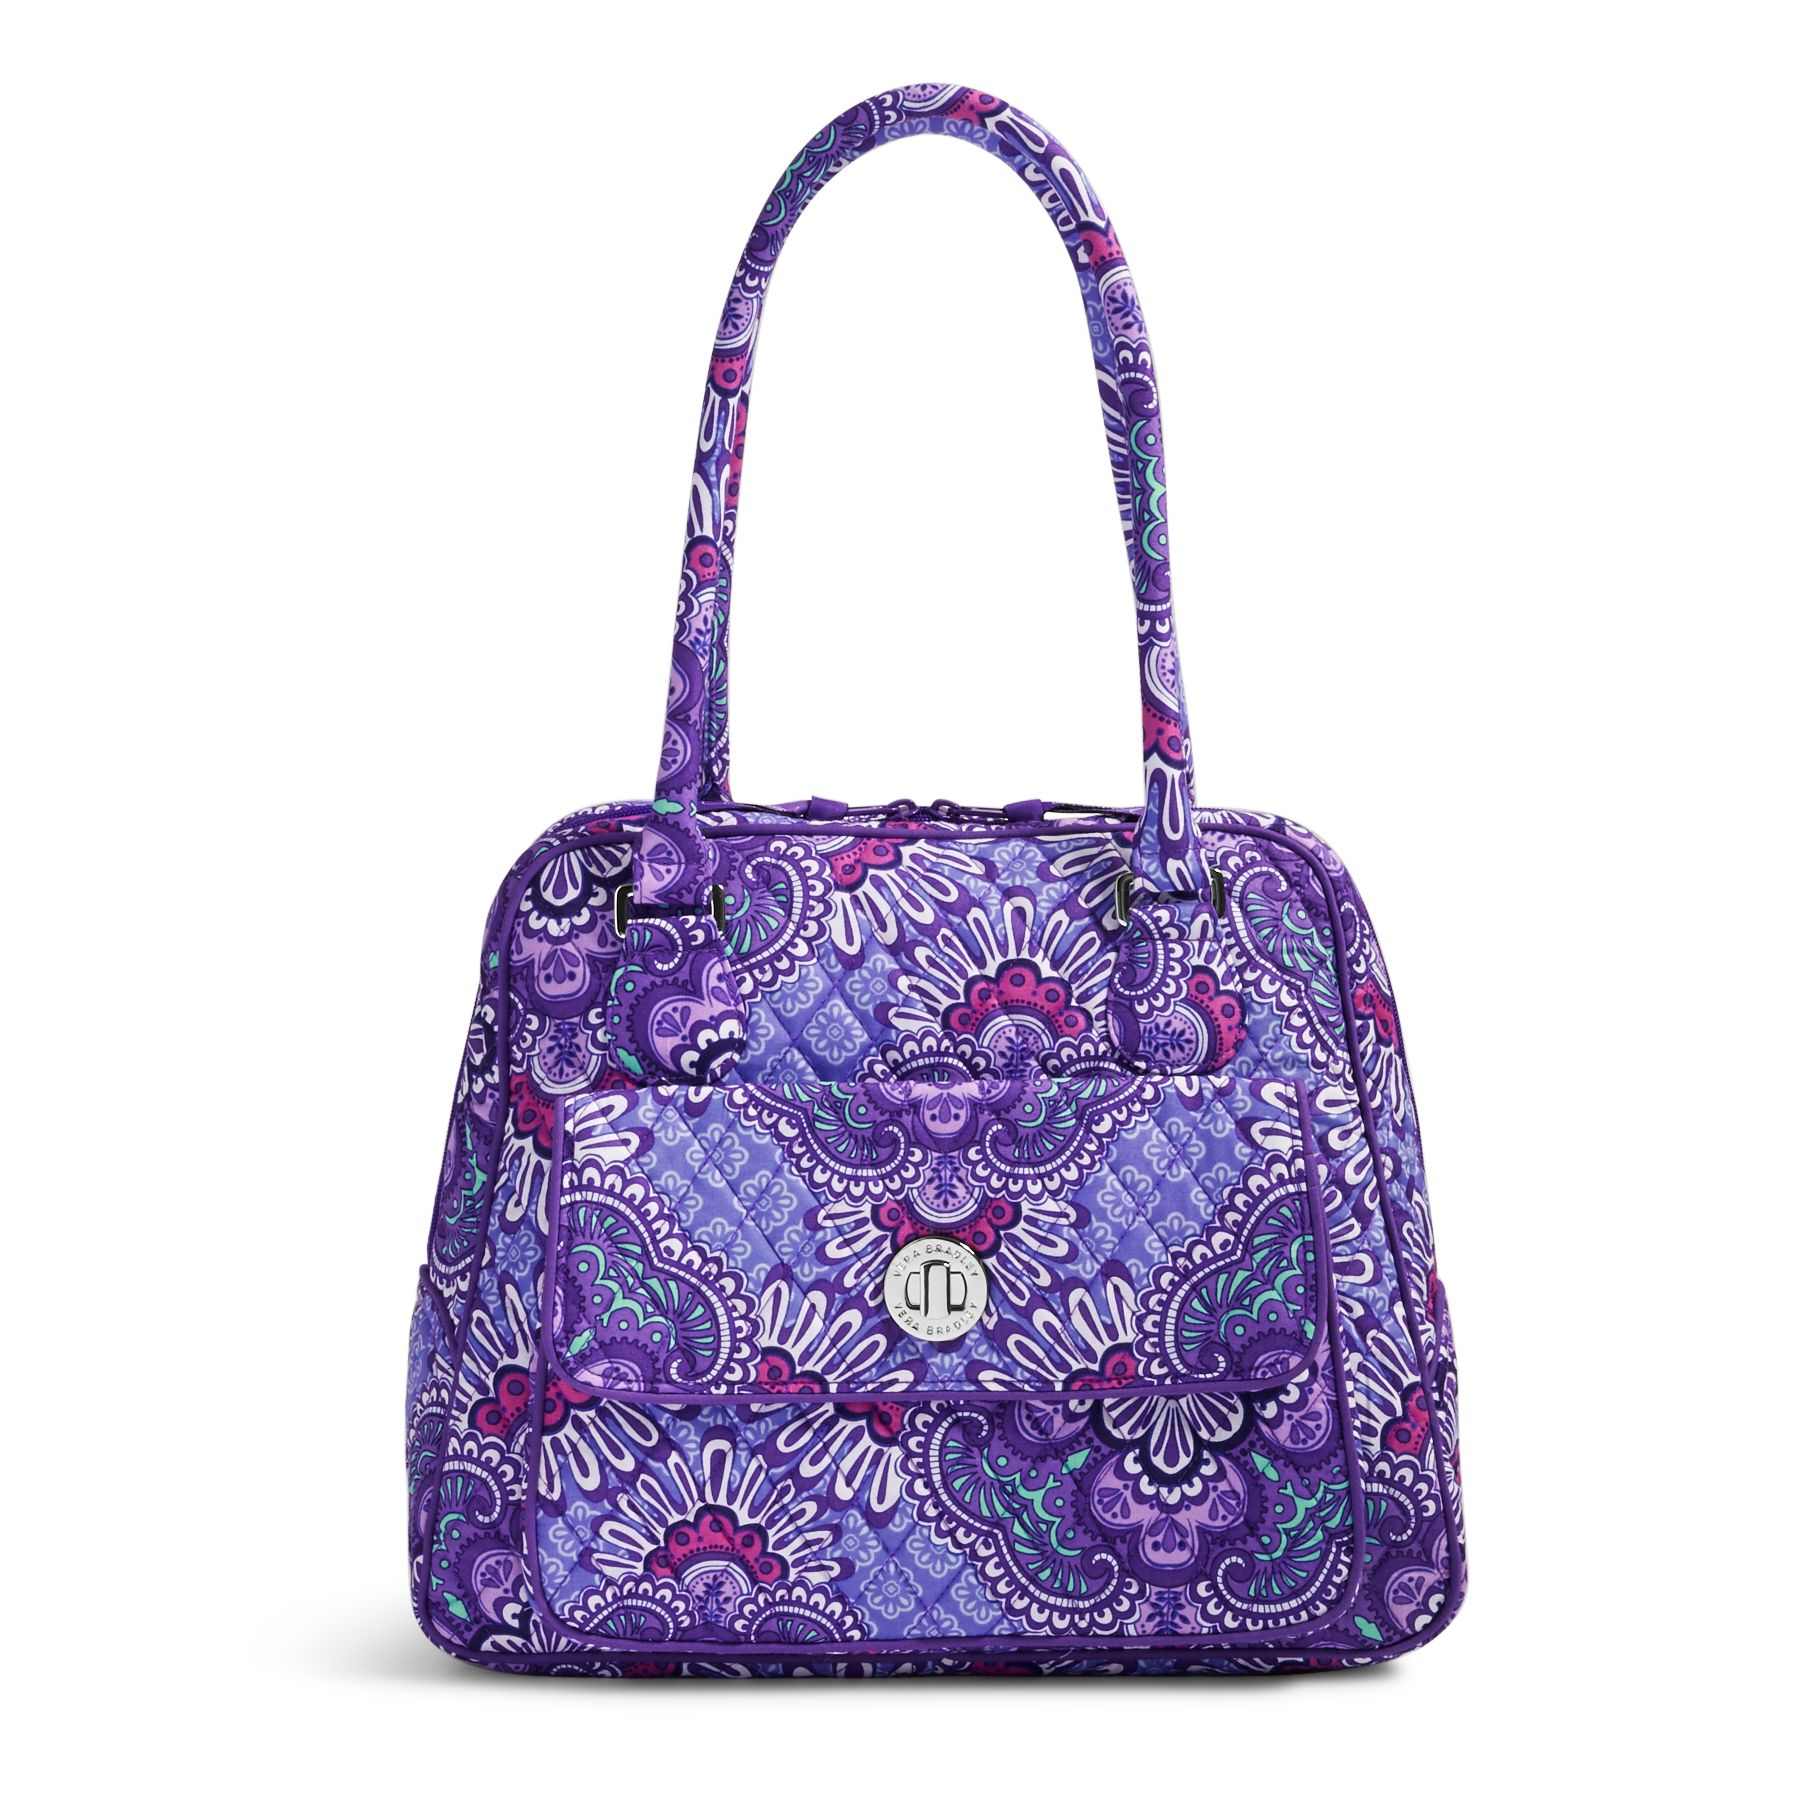 Shop for and buy vera bradley outlet sale online at Macy's. Find vera bradley outlet sale at Macy's.